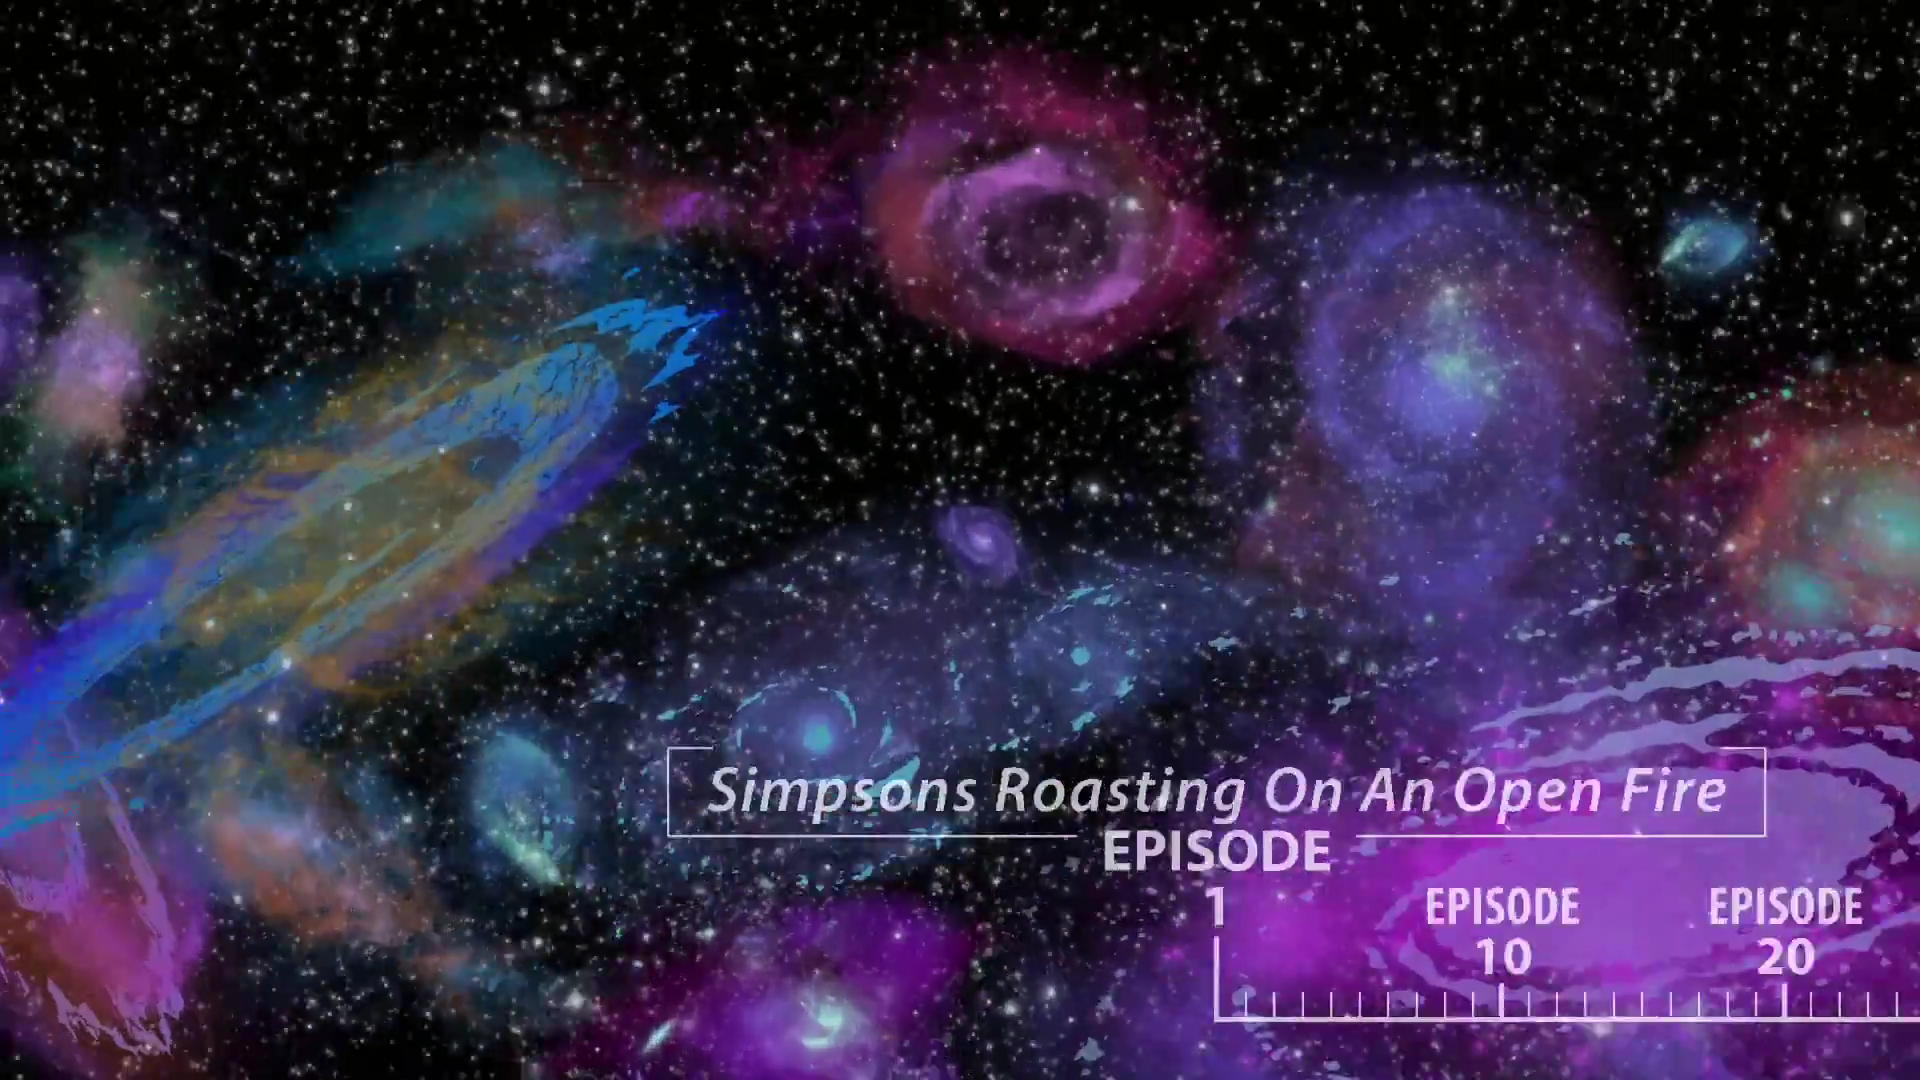 Big Bang Couch Gag The Big Bang Theory Wikisimpsons The Simpsons Wiki